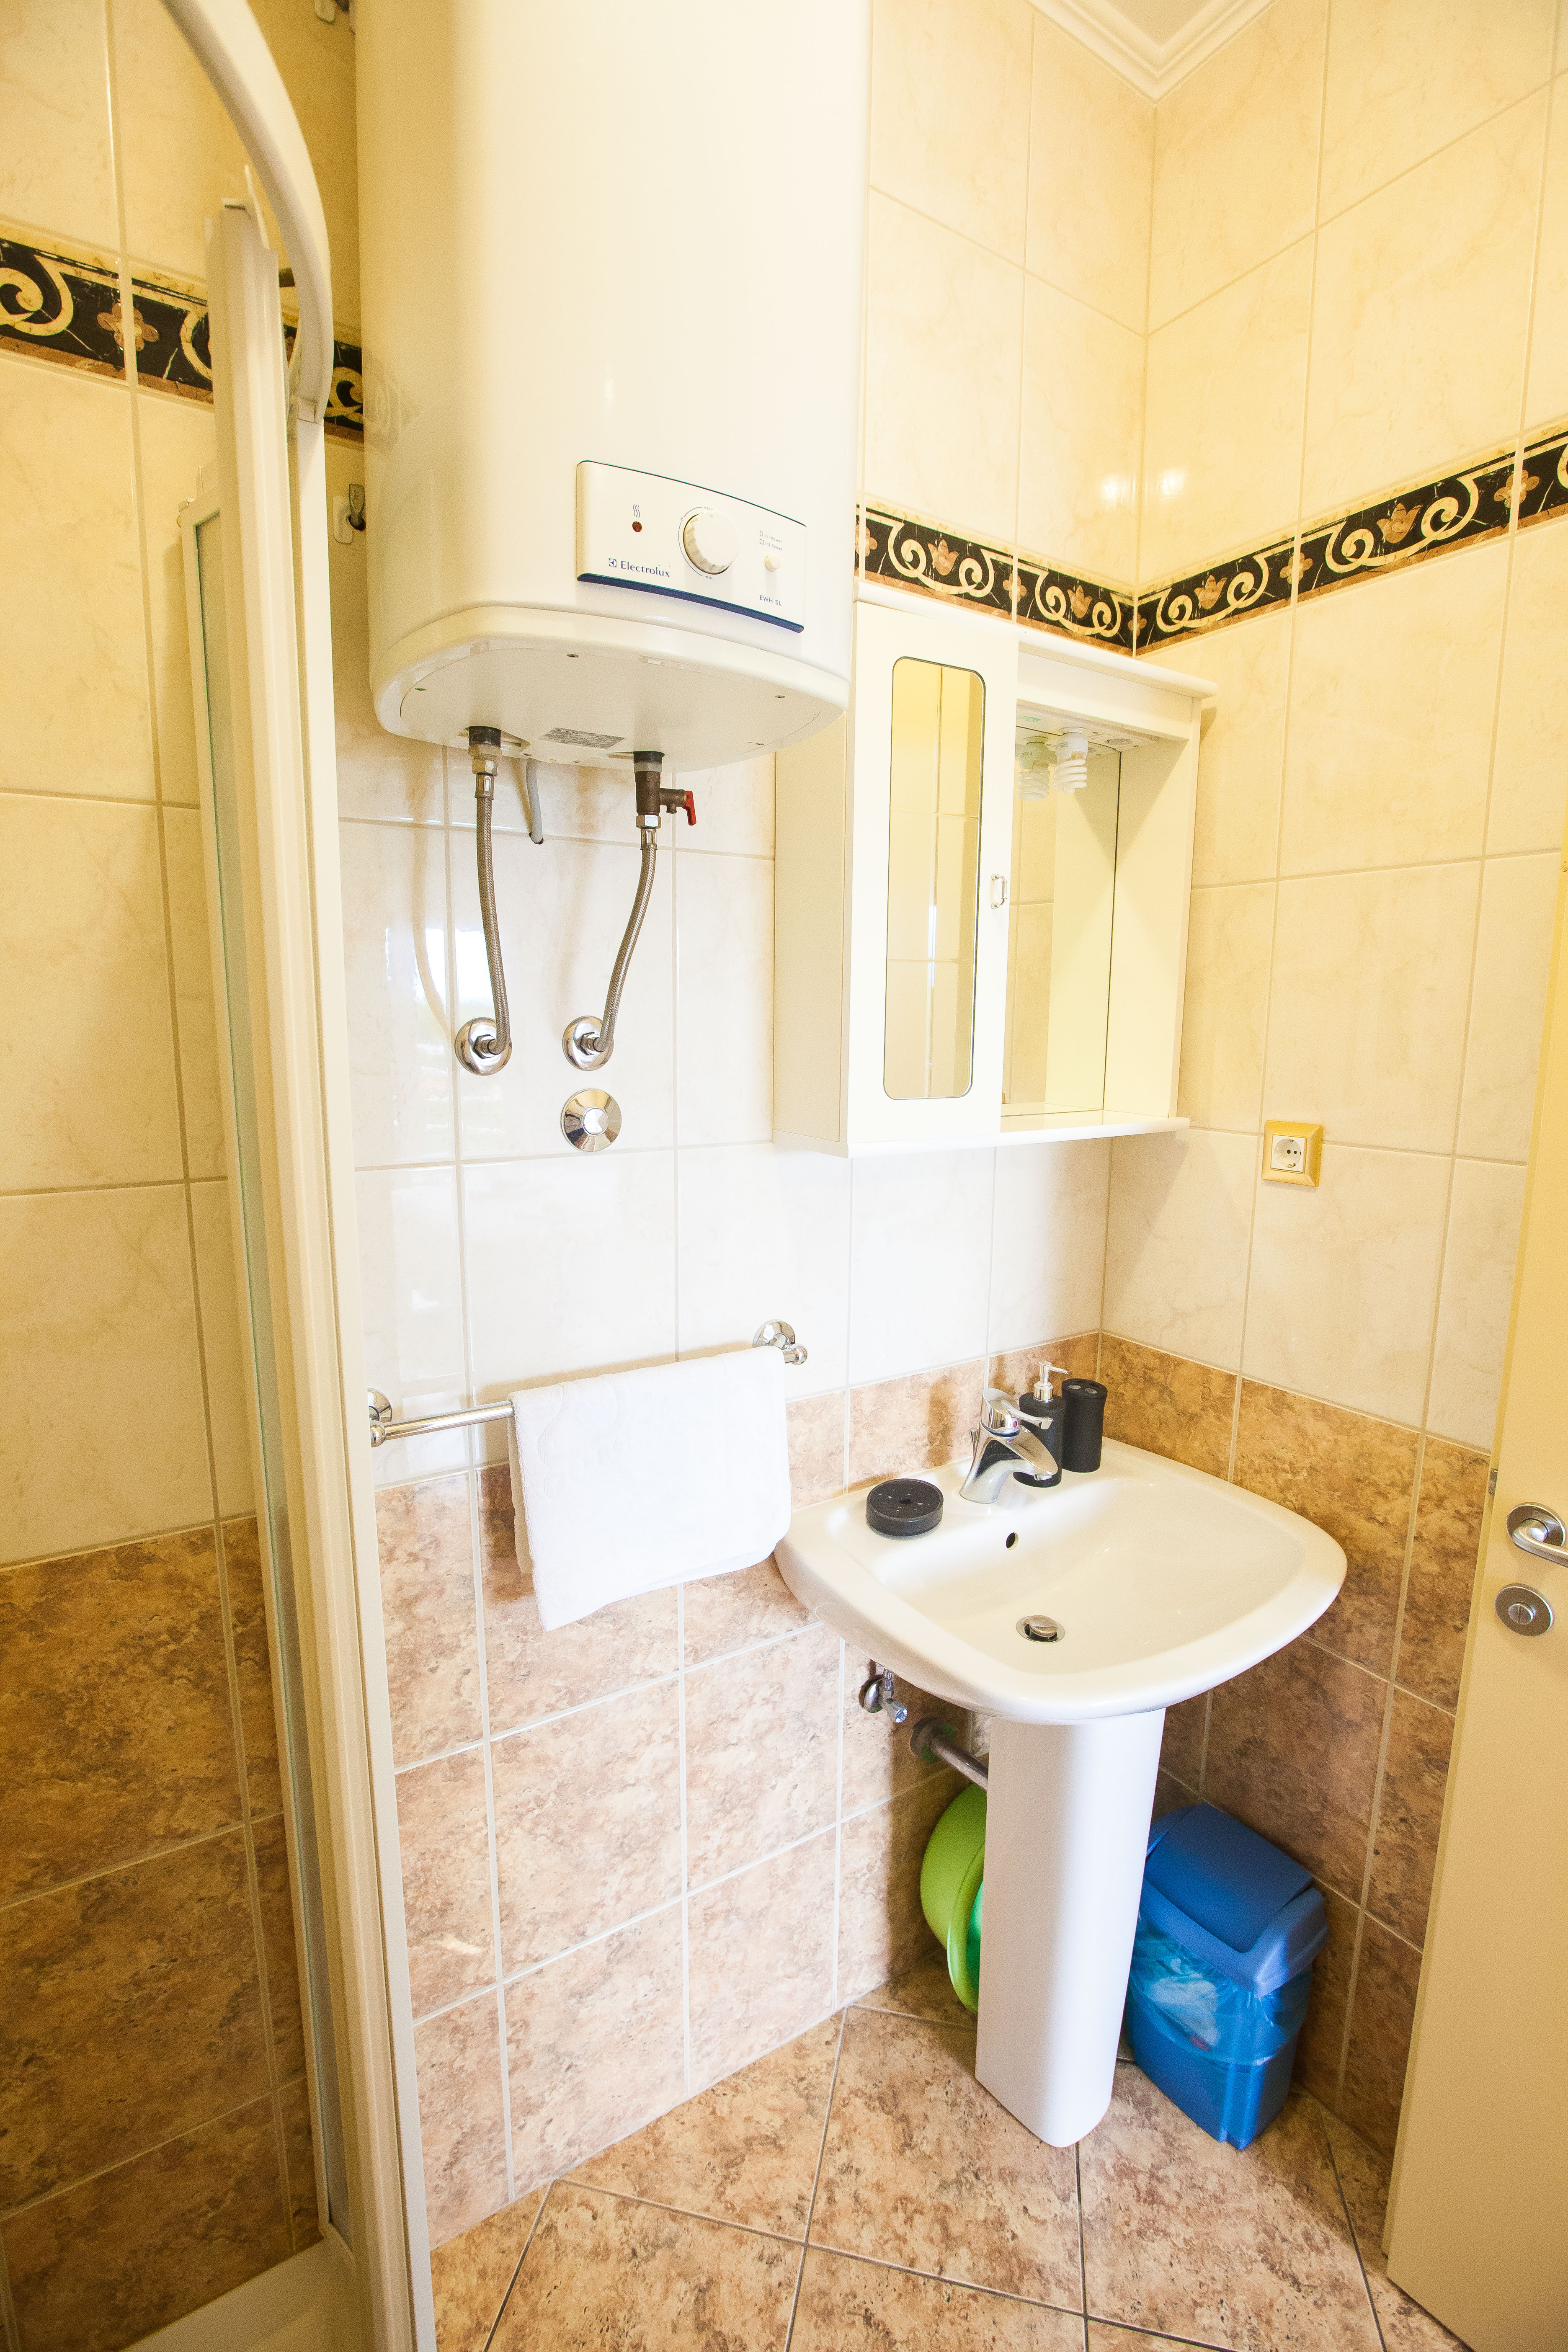 Rooms And Booking VillaJulia Official Website - Rooms for rent with private bathroom and kitchen